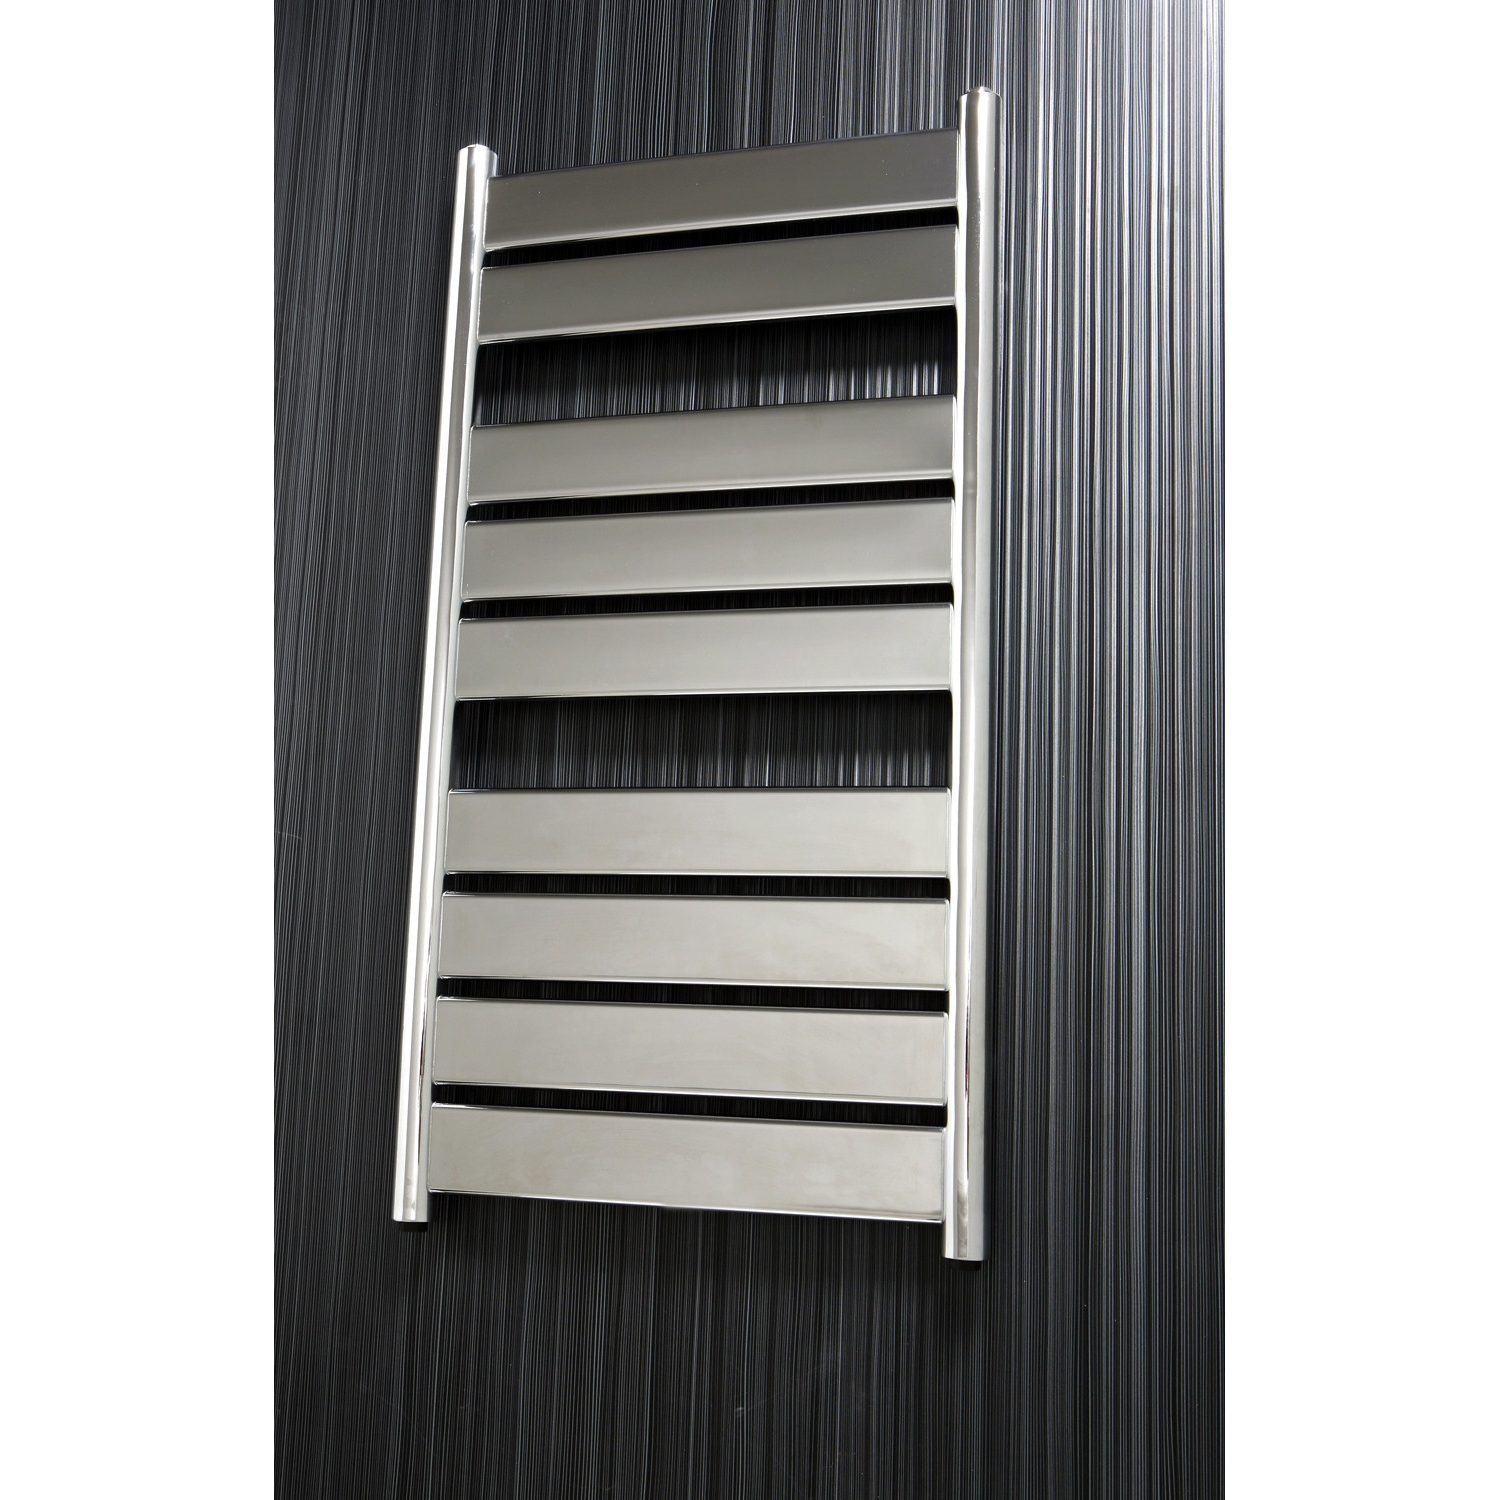 Verona Riva Designer Heated Towel Rail 1300mm H x 500mm W - Chrome